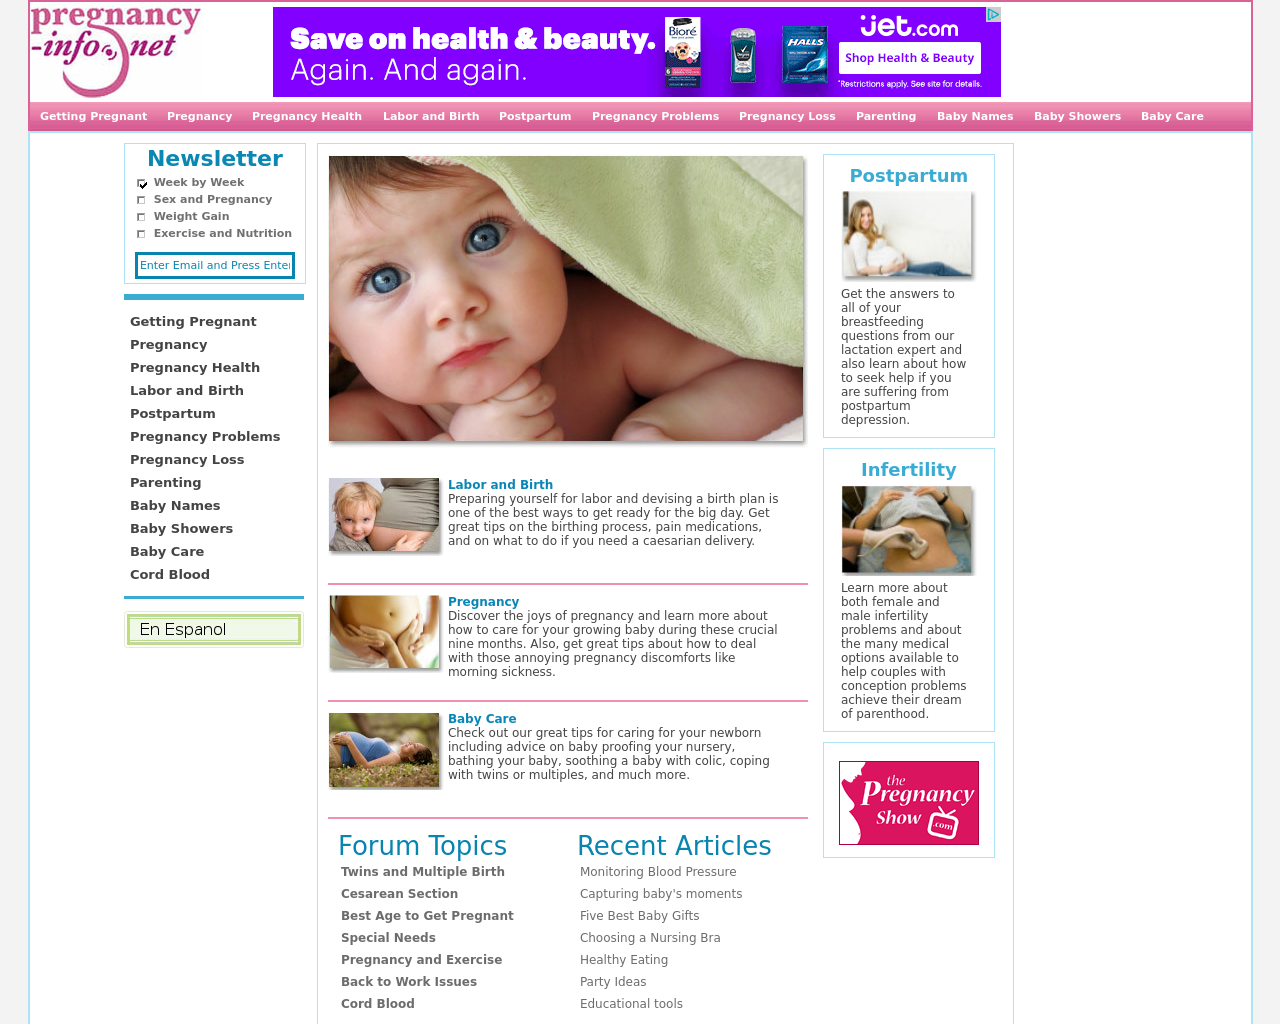 Pregnancy-info.net-Advertising-Reviews-Pricing